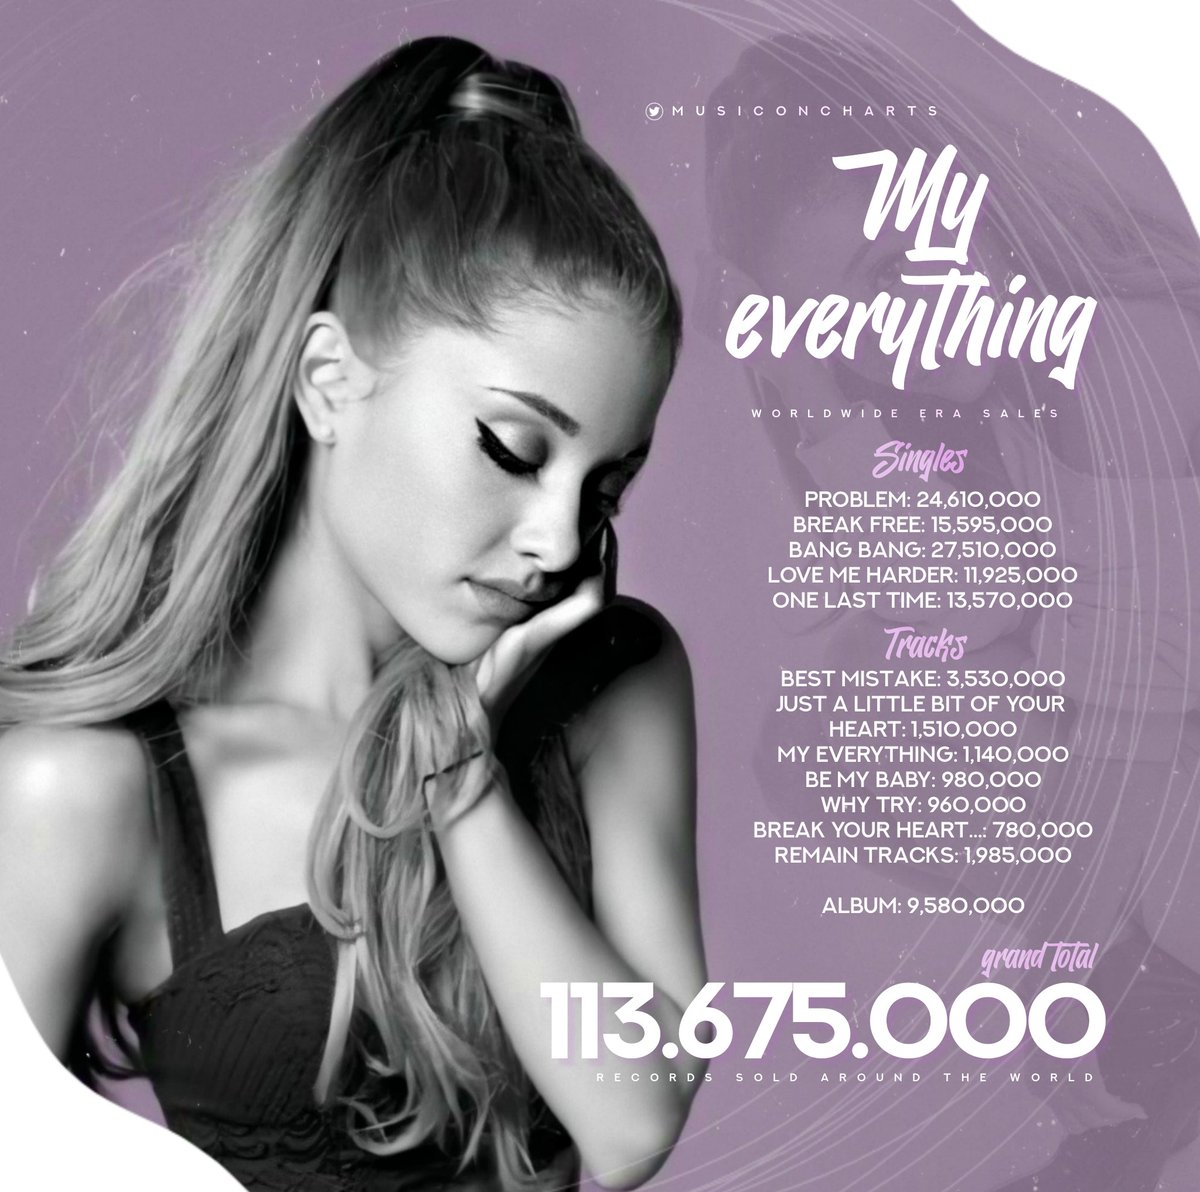 """.@ArianaGrande's """"My Everything"""" era has surpassed 113 MILLION records sold worldwide, it's her best-selling record and one of the most successful of ALL-TIME! <br>http://pic.twitter.com/i1mFNFeBxr"""